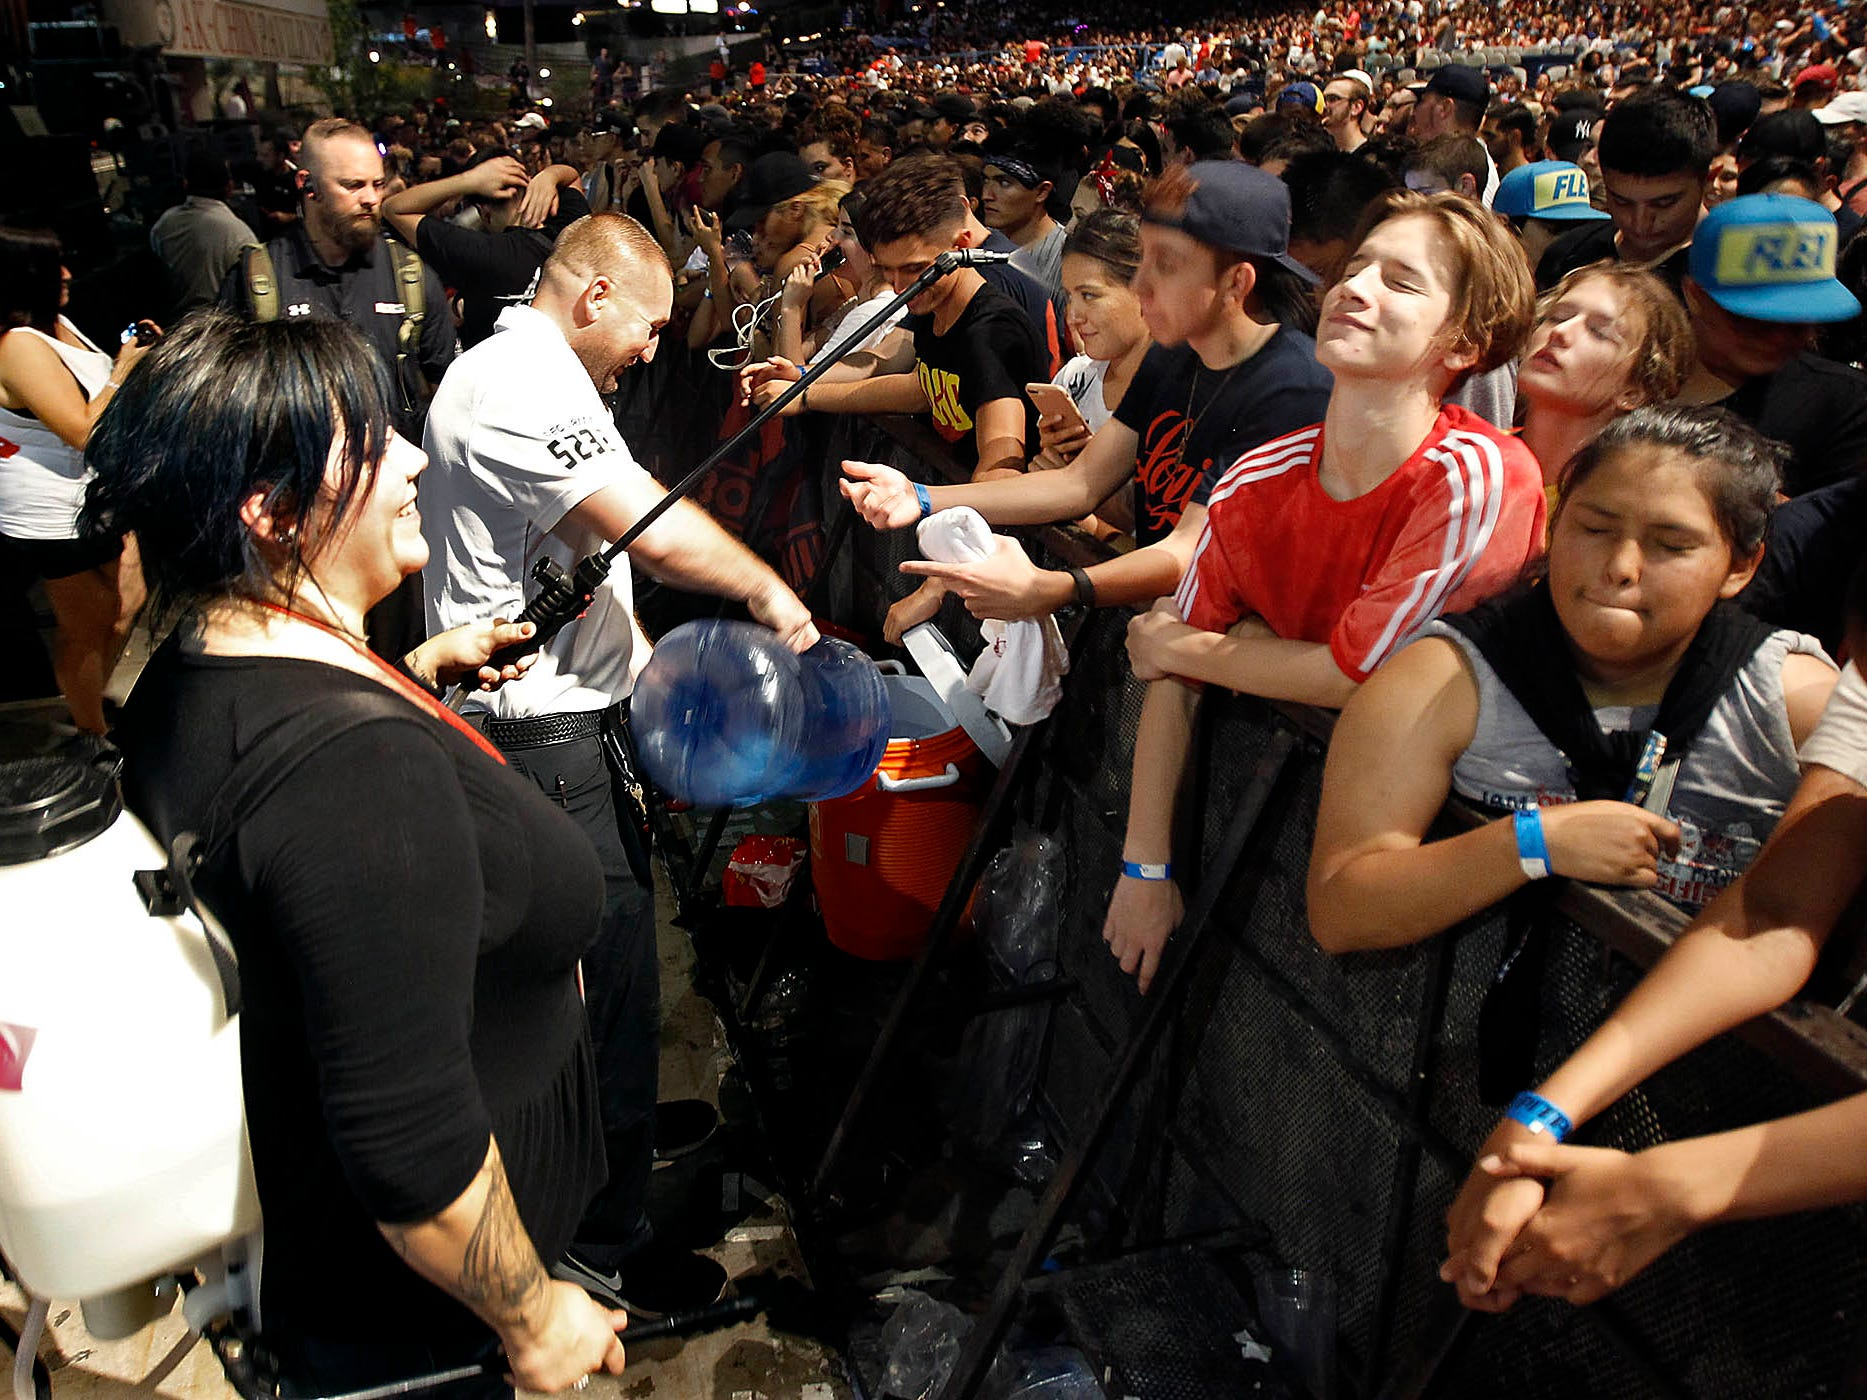 Security staff offer water and use a sprayer to give fans some relief from the heat during Logic's Bobby Tarantino vs Everybody Tour at Ak-Chin Pavilion in Phoenix on Wednesday, July 25, 2018.